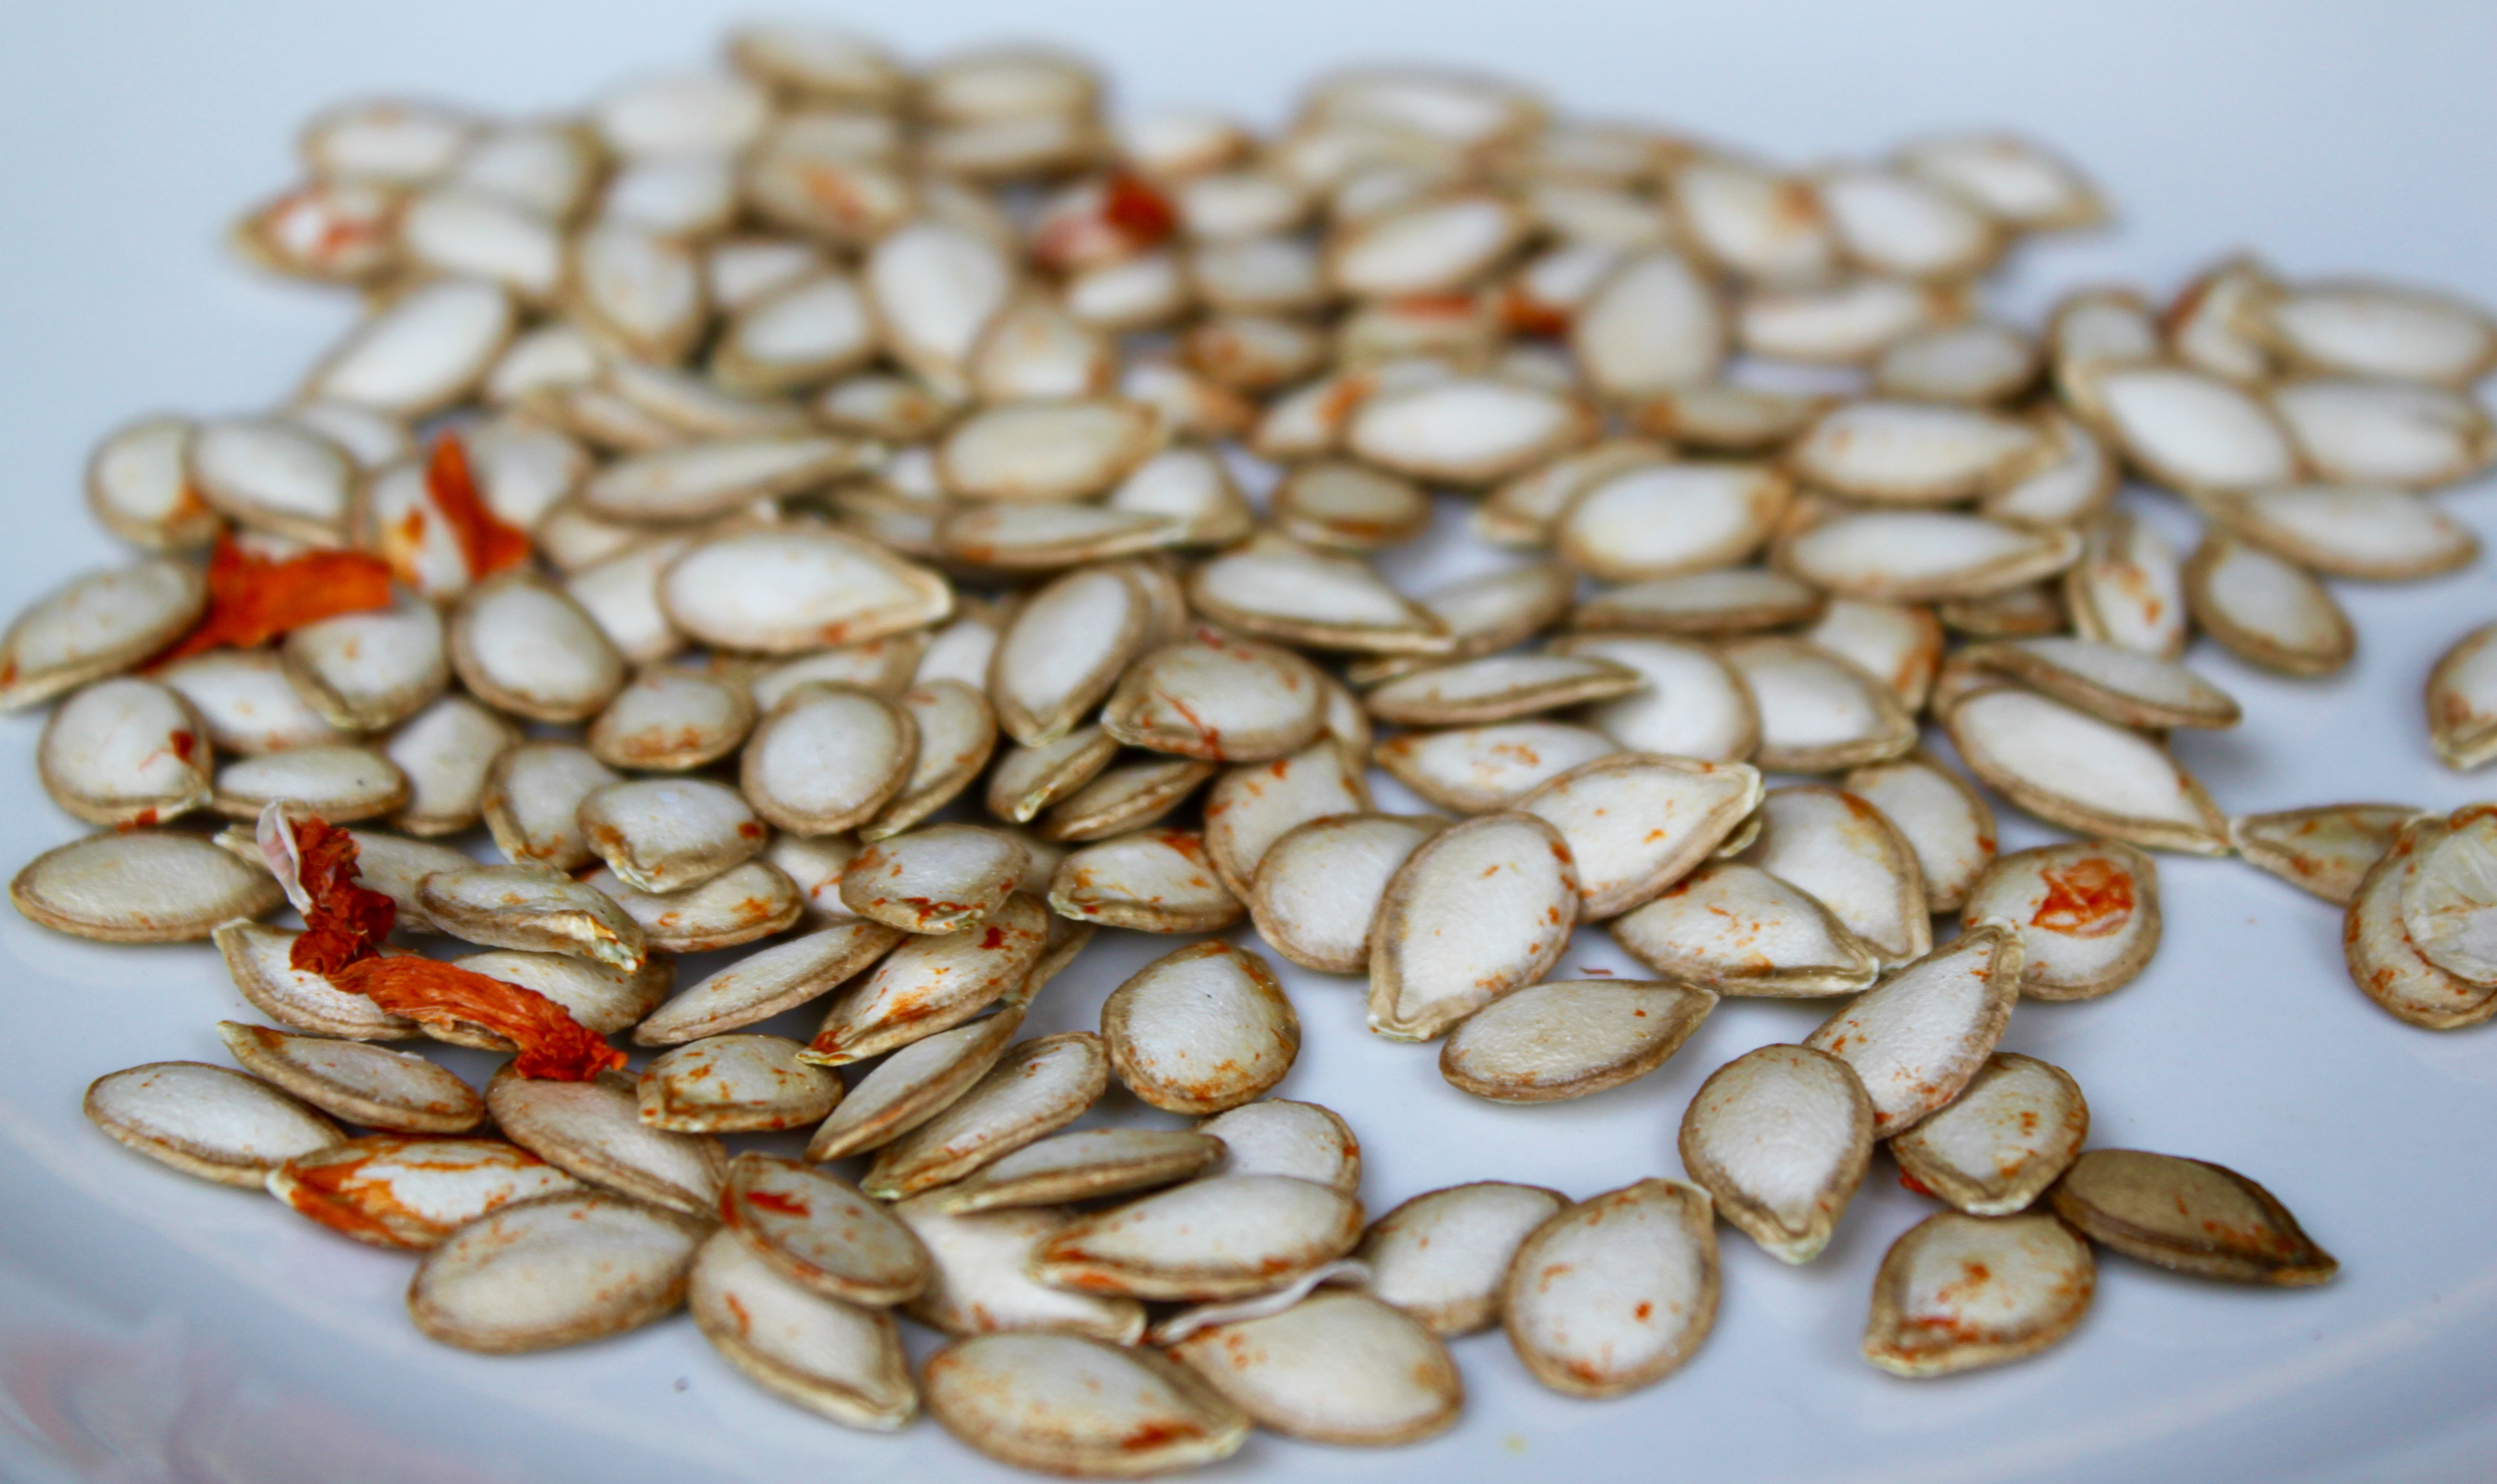 Dried butternut seeds, ready to be planted.